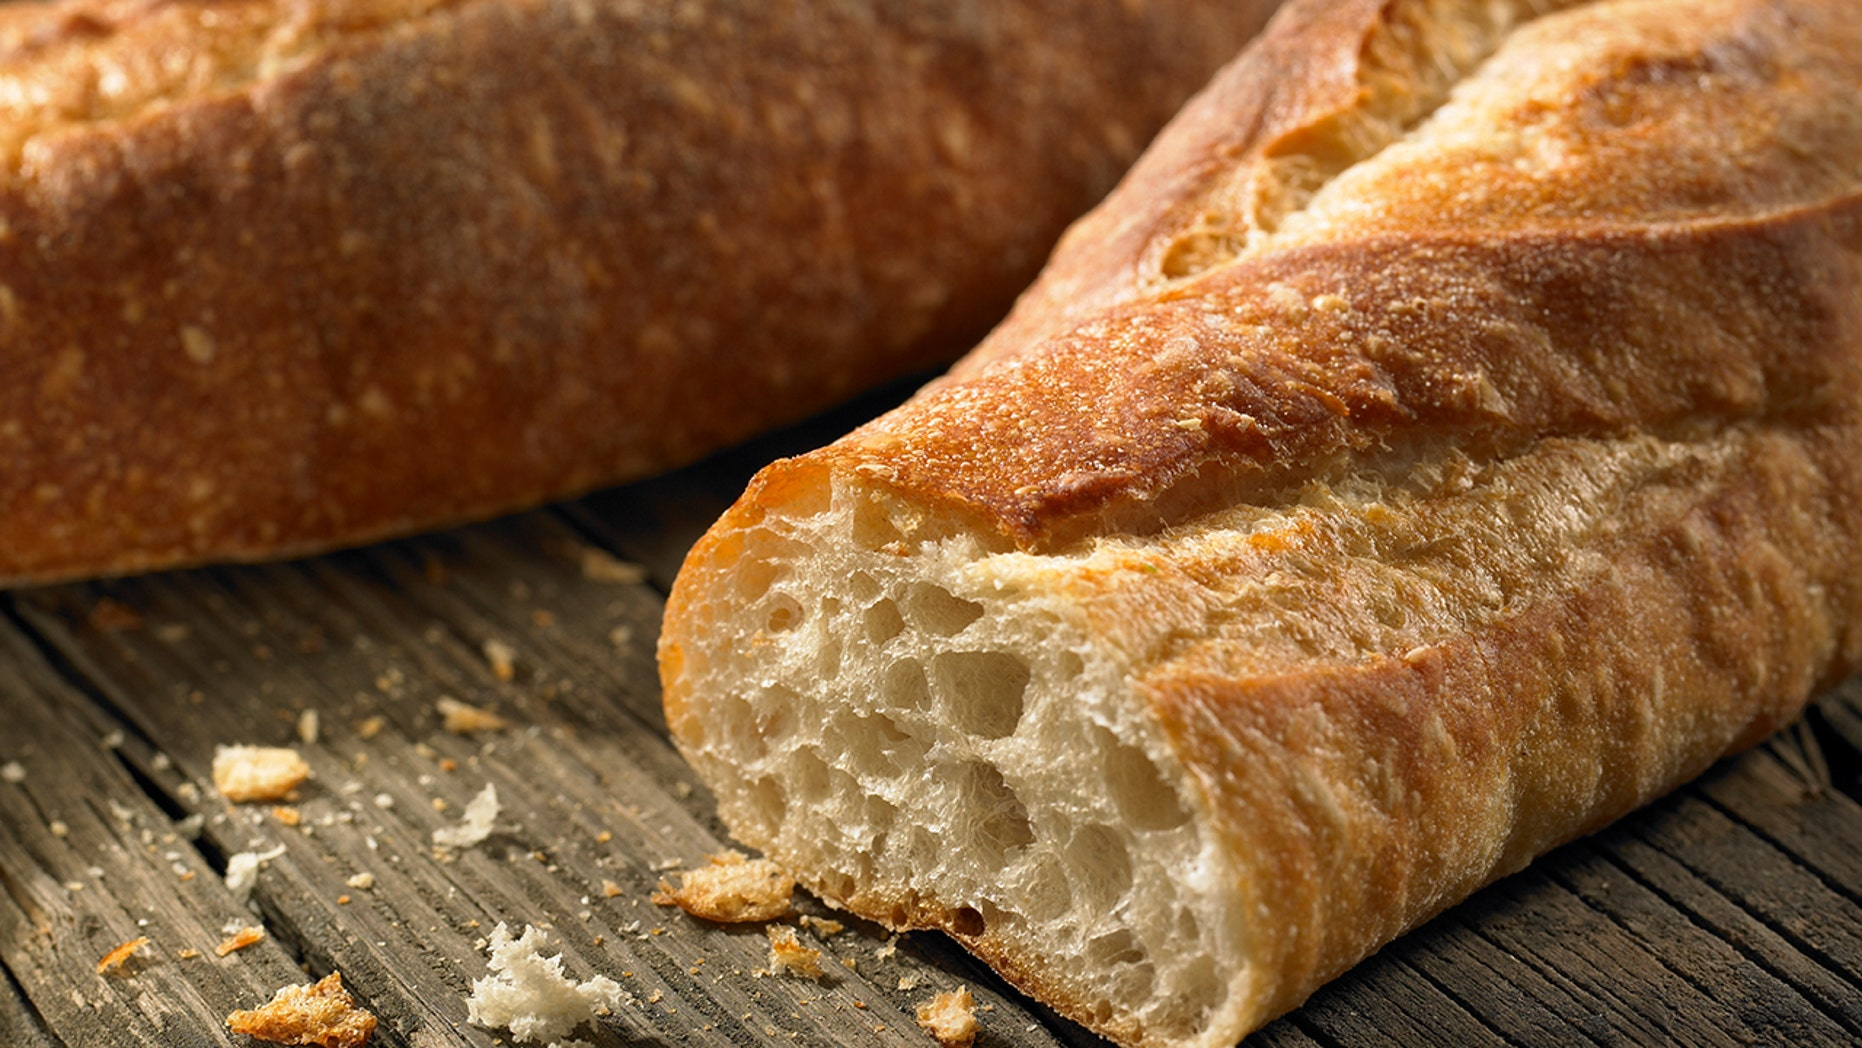 An angry customer beat a supermarket employee in the face with French bread